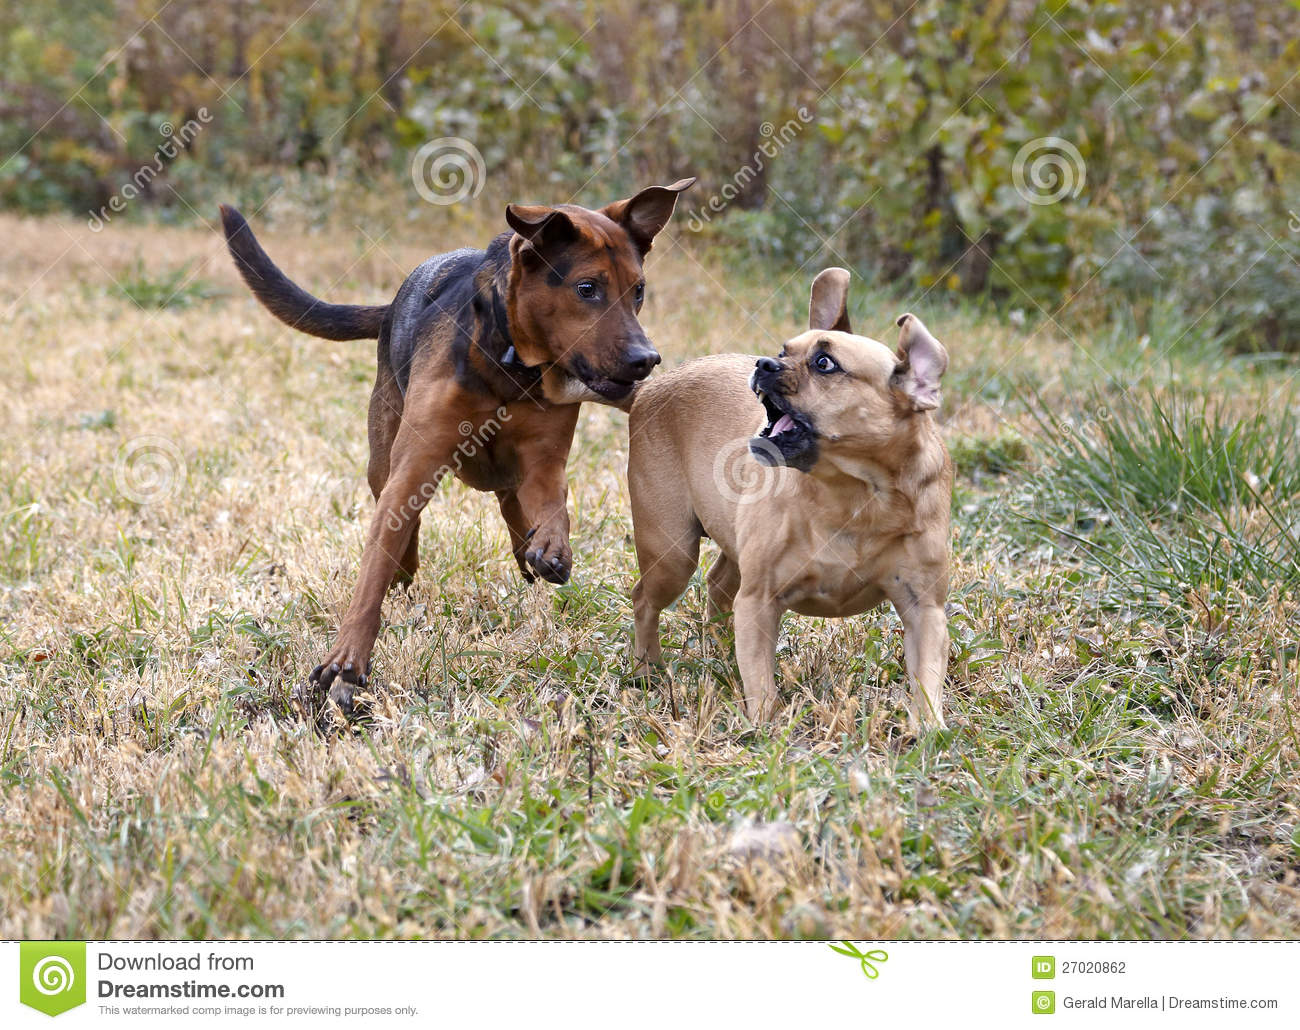 Boxer Shepherd and Puggle mixed breed dogs play in a field.